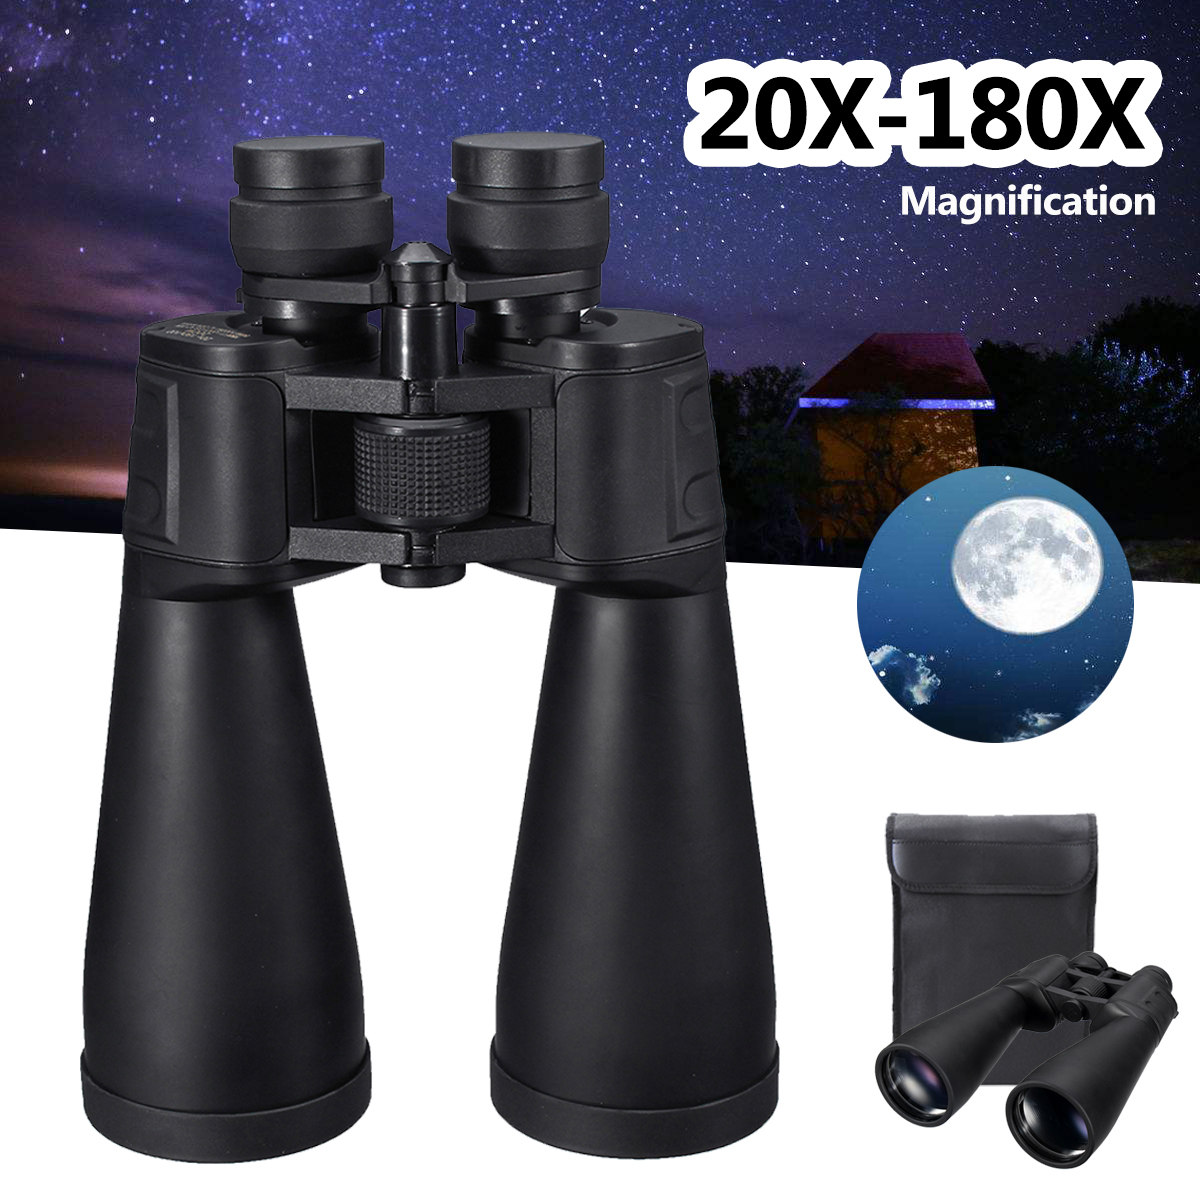 20X-180X 85mm High Definition Binoculars Telescope HD Waterproof Low Light Night Vision 1000M for Outdoor Birdwatching Hunting стоимость